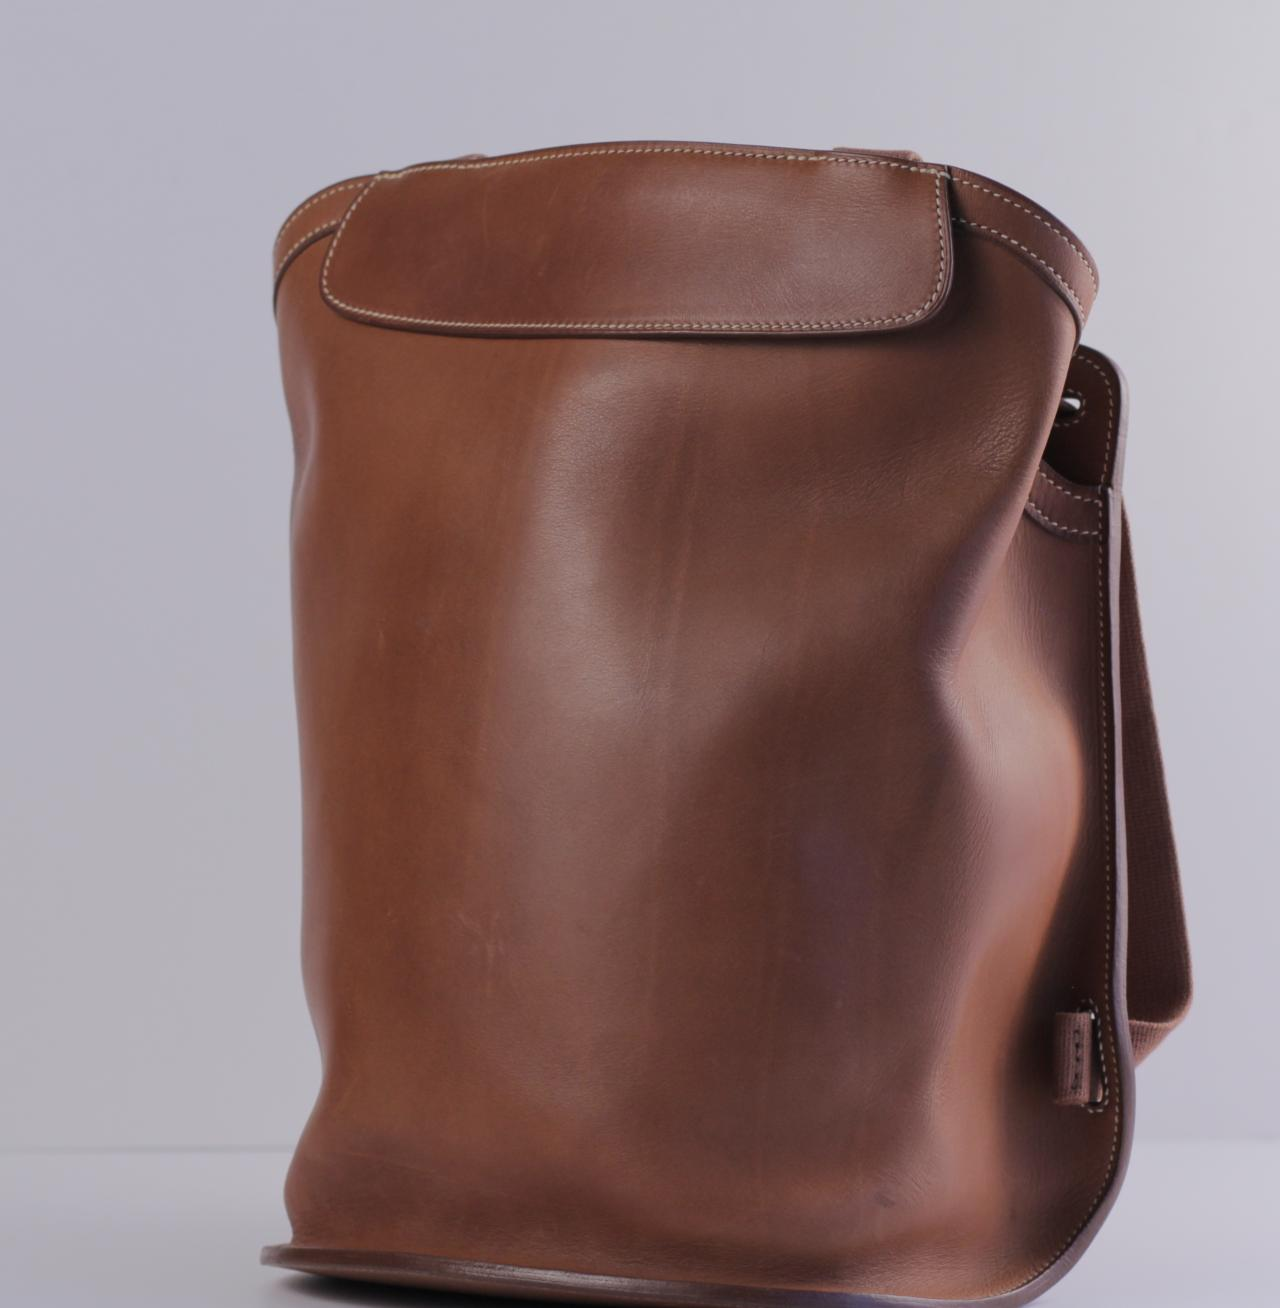 authentic-hermes-sherpa-2-way-tote-backpack-barenia-leather-rare-8.jpg